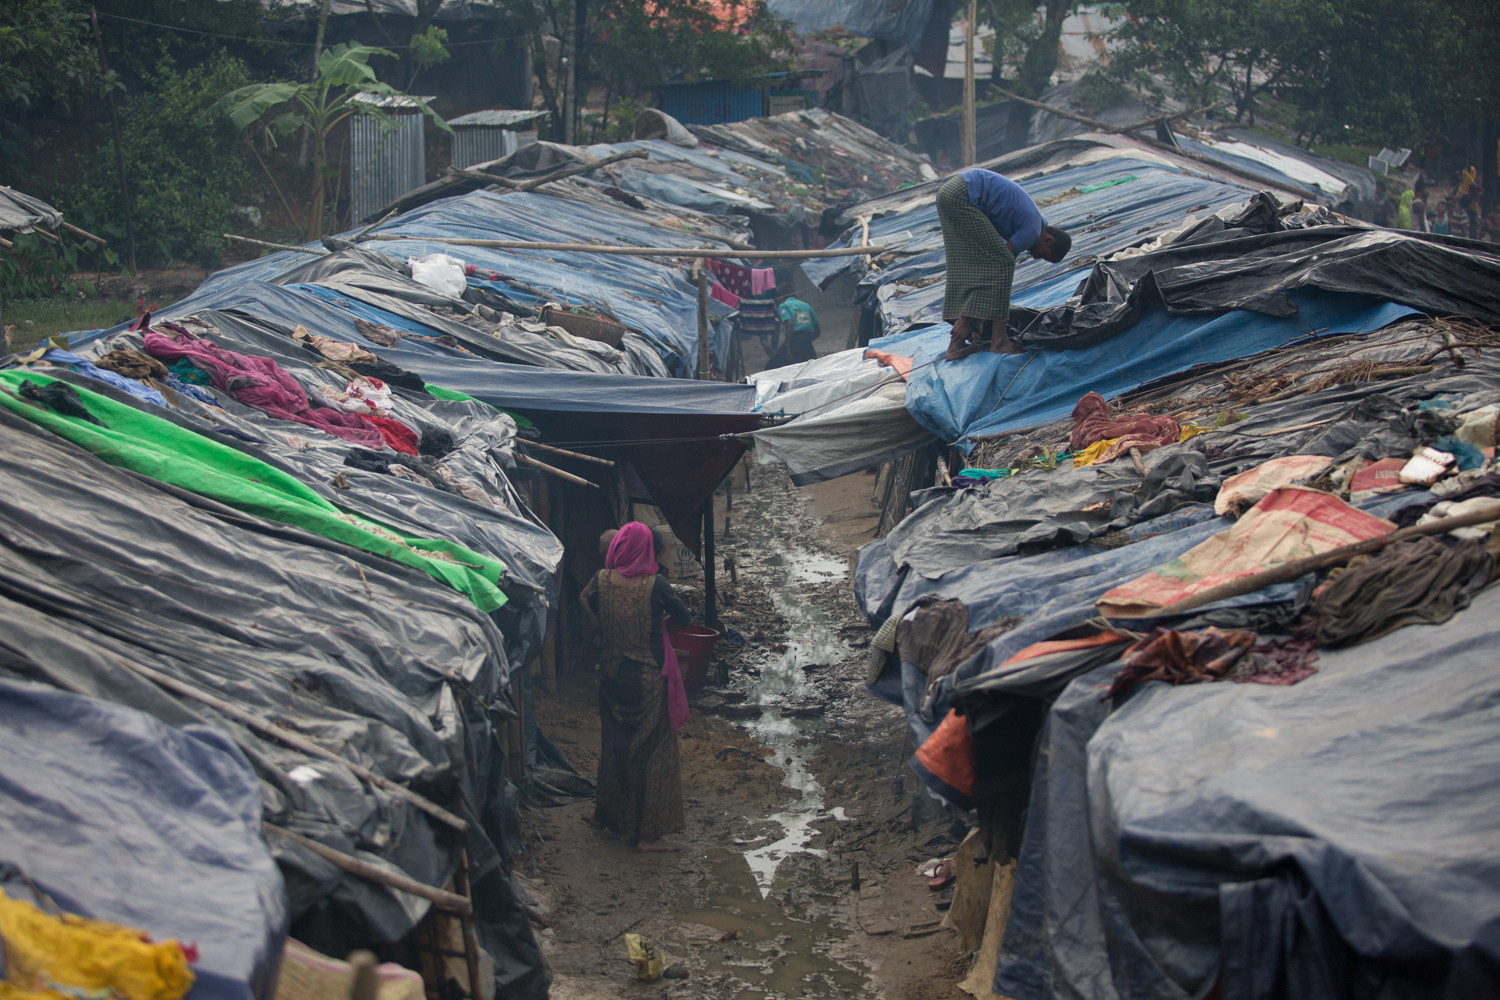 'The challenge is the fact that refugees are settling in an area that is without infrastructure,' said Matt Kertman, a spokesman for BRAC, a Bangladesh-based NGO. Bangladesh is one of the most congested countries with 160 million people living in a place roughly the size of Iowa.